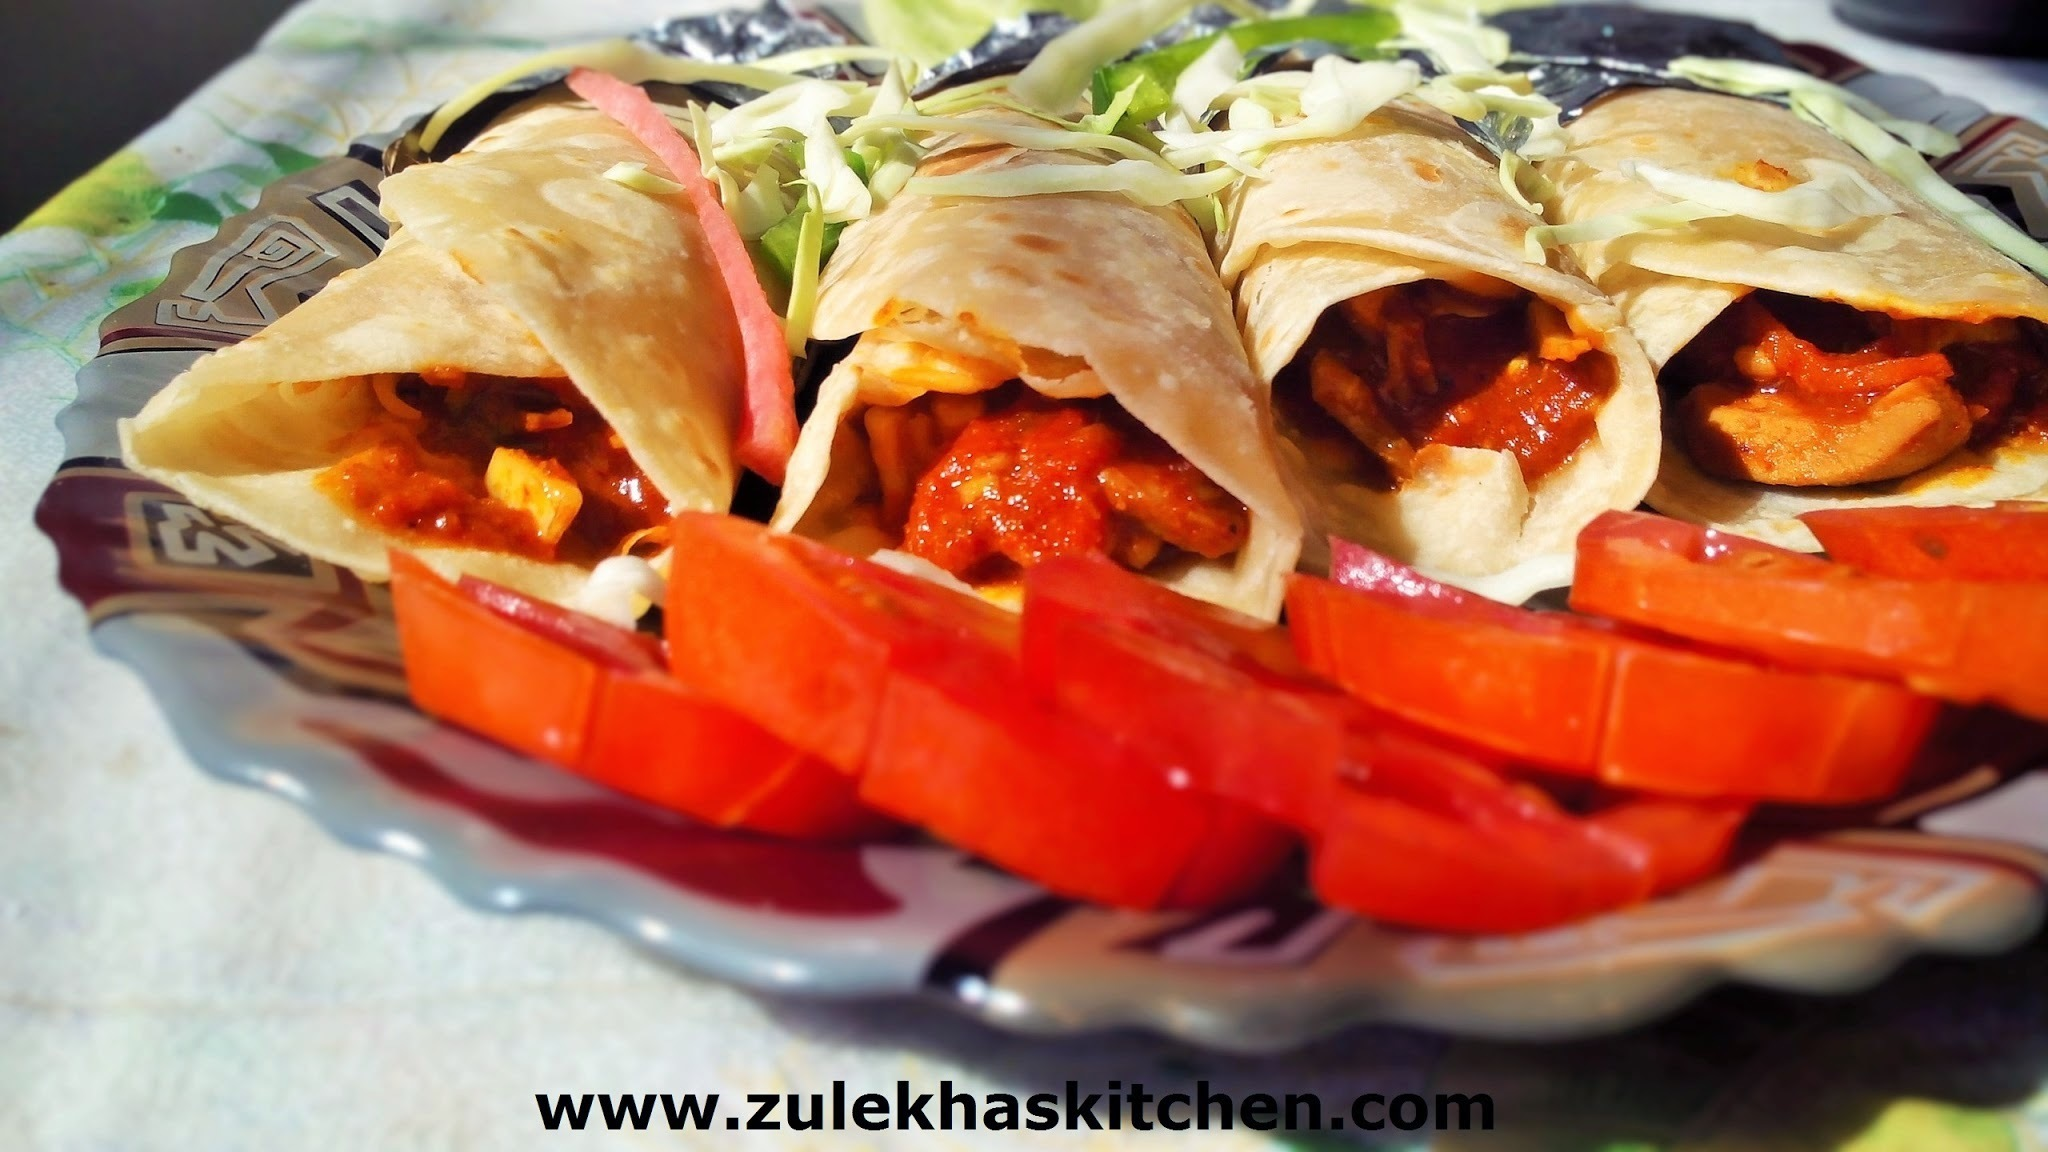 Recipe of chicken wraps / wraps and rolls